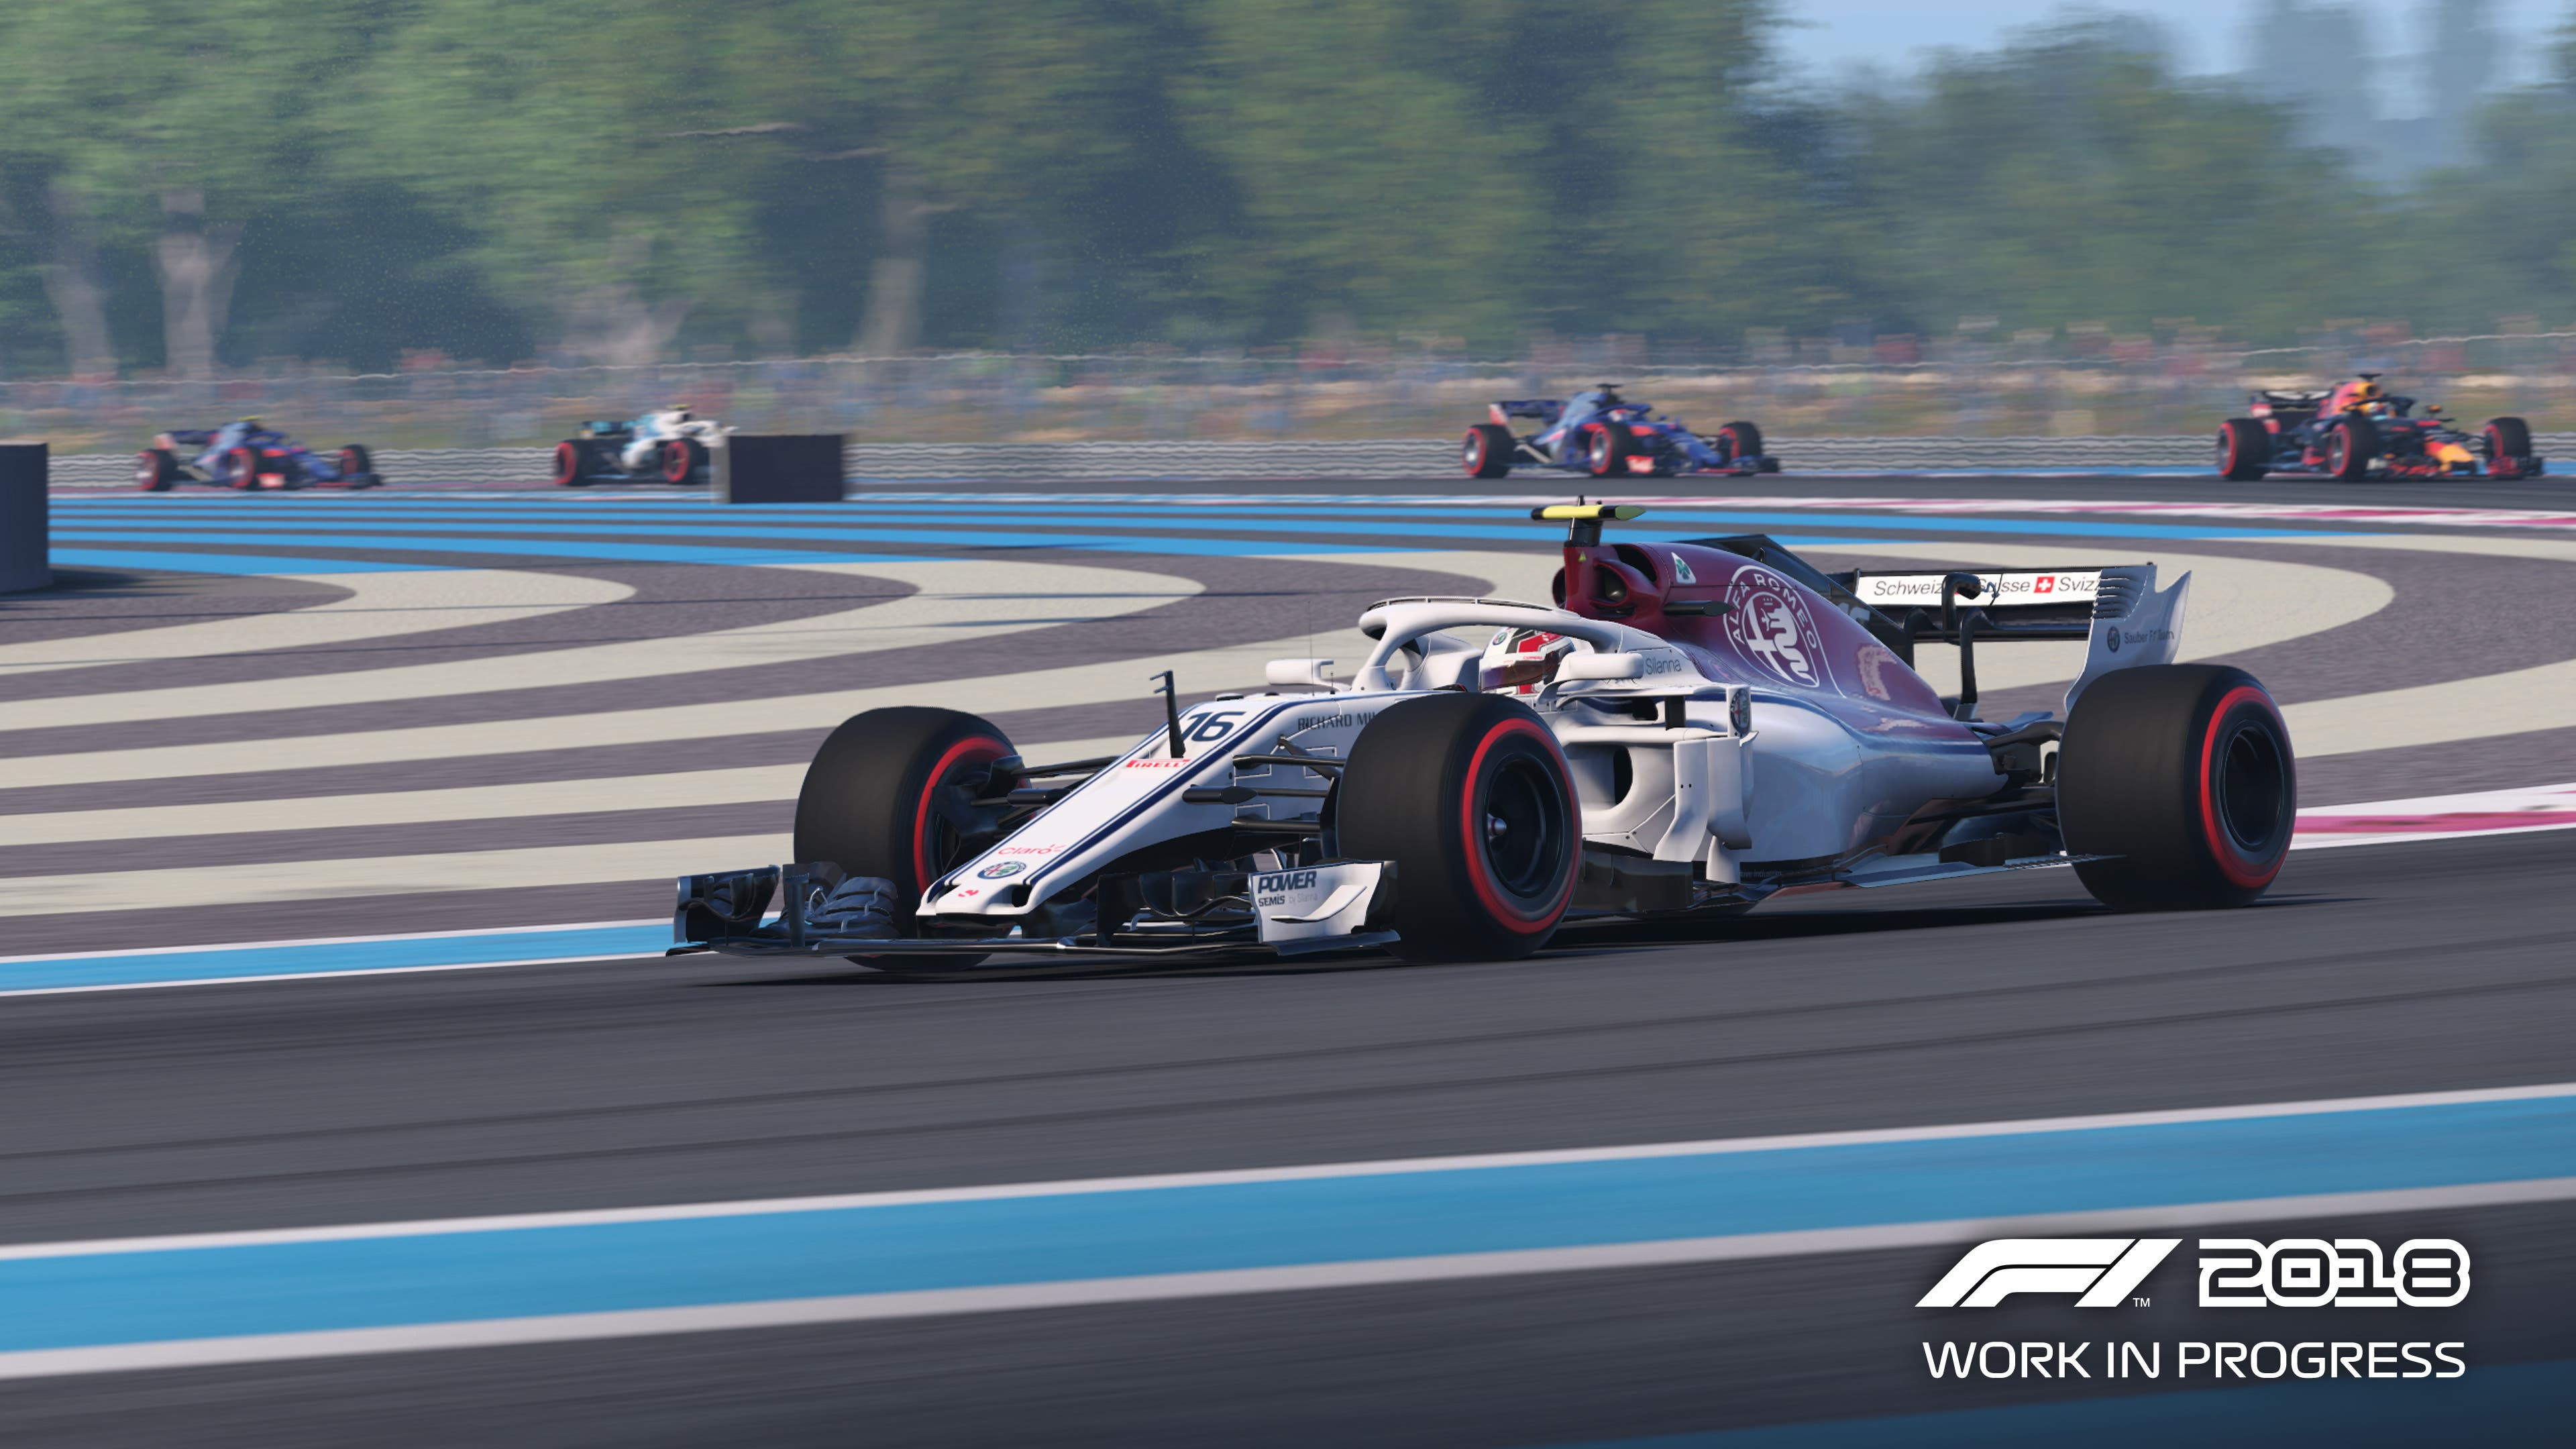 F1 2018 Review - Saving Content